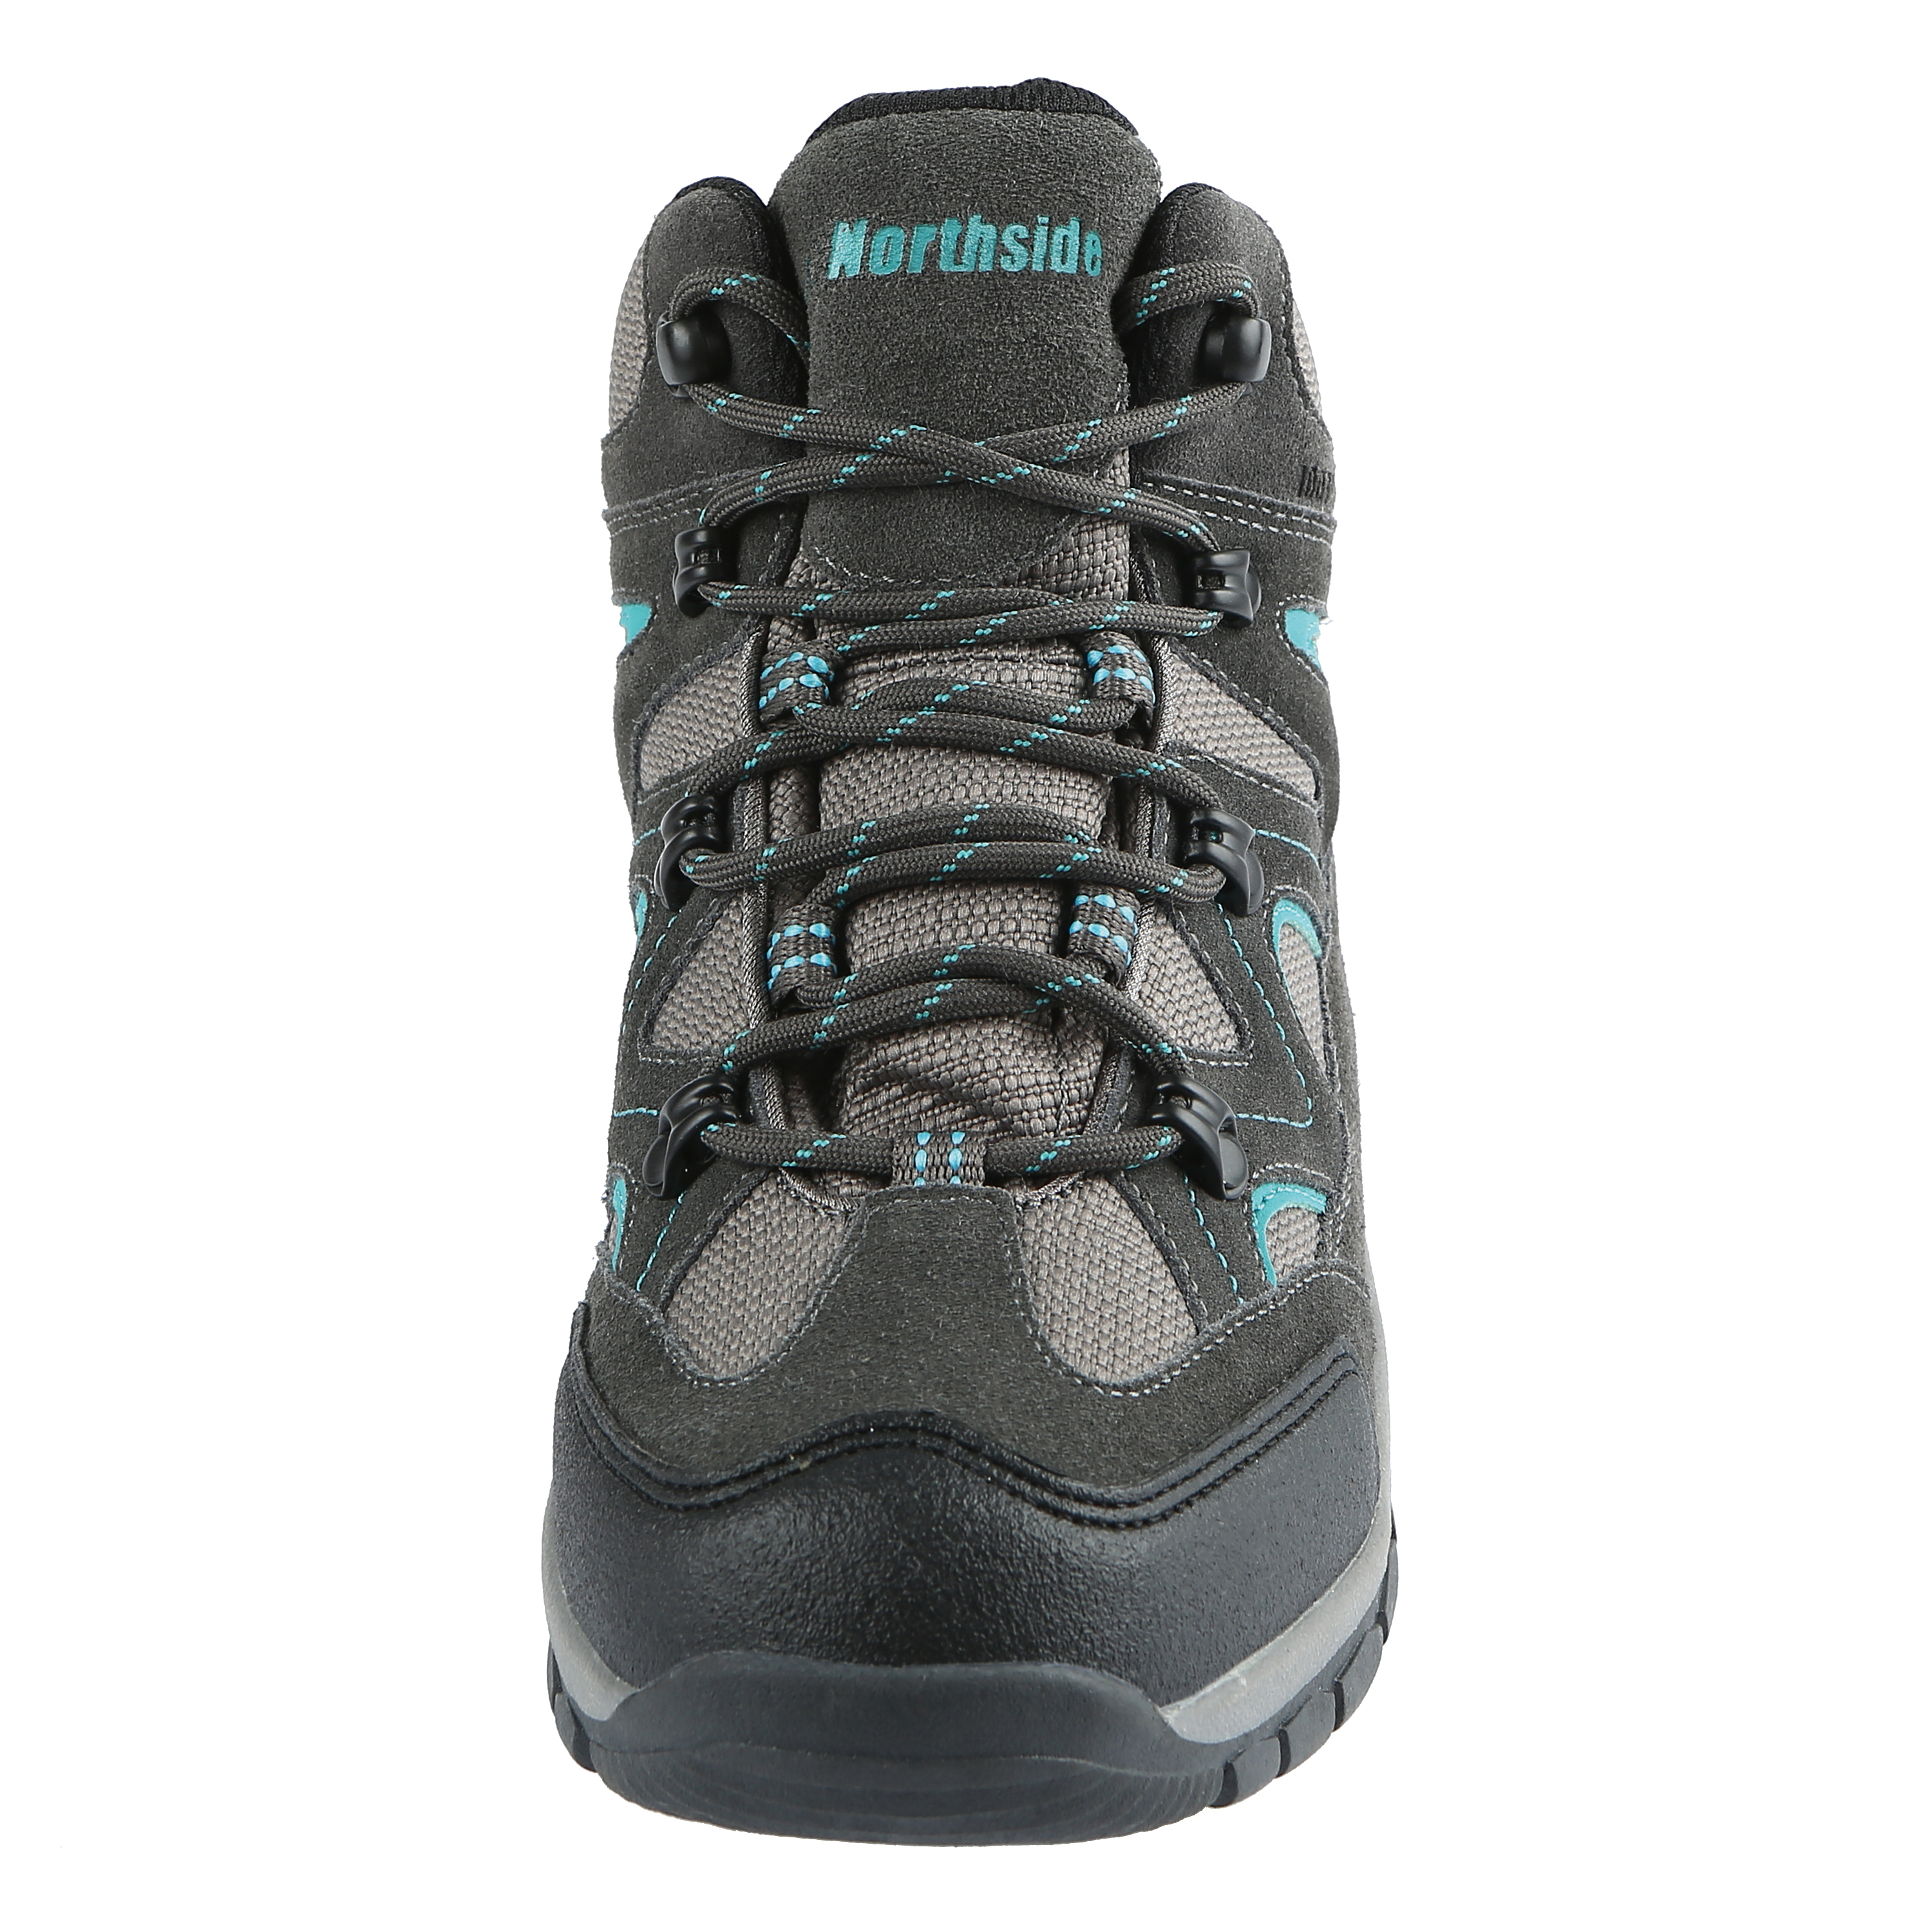 Northside Womens SNOHOMISH, Dk Gray/Dk Turquoise, 6